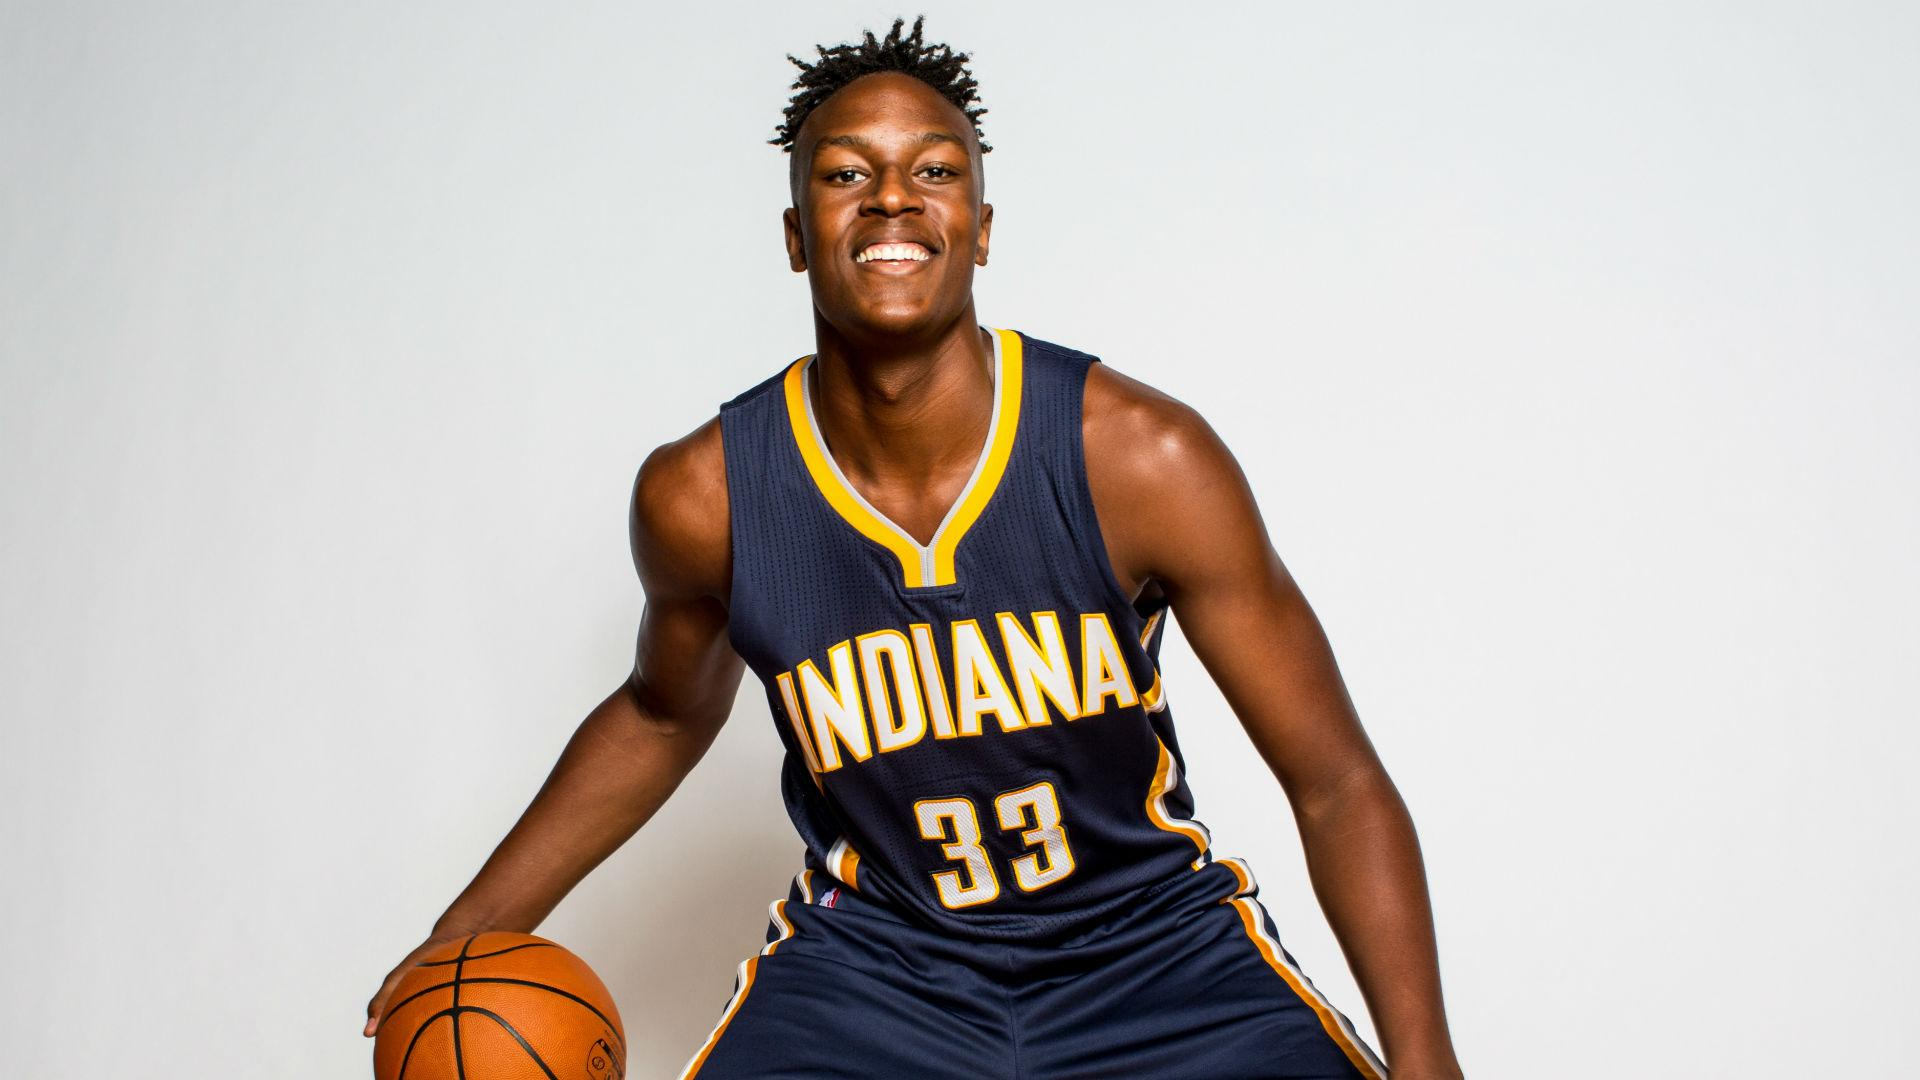 Myles Turner Indiana wallpapers 2018 in Basketball